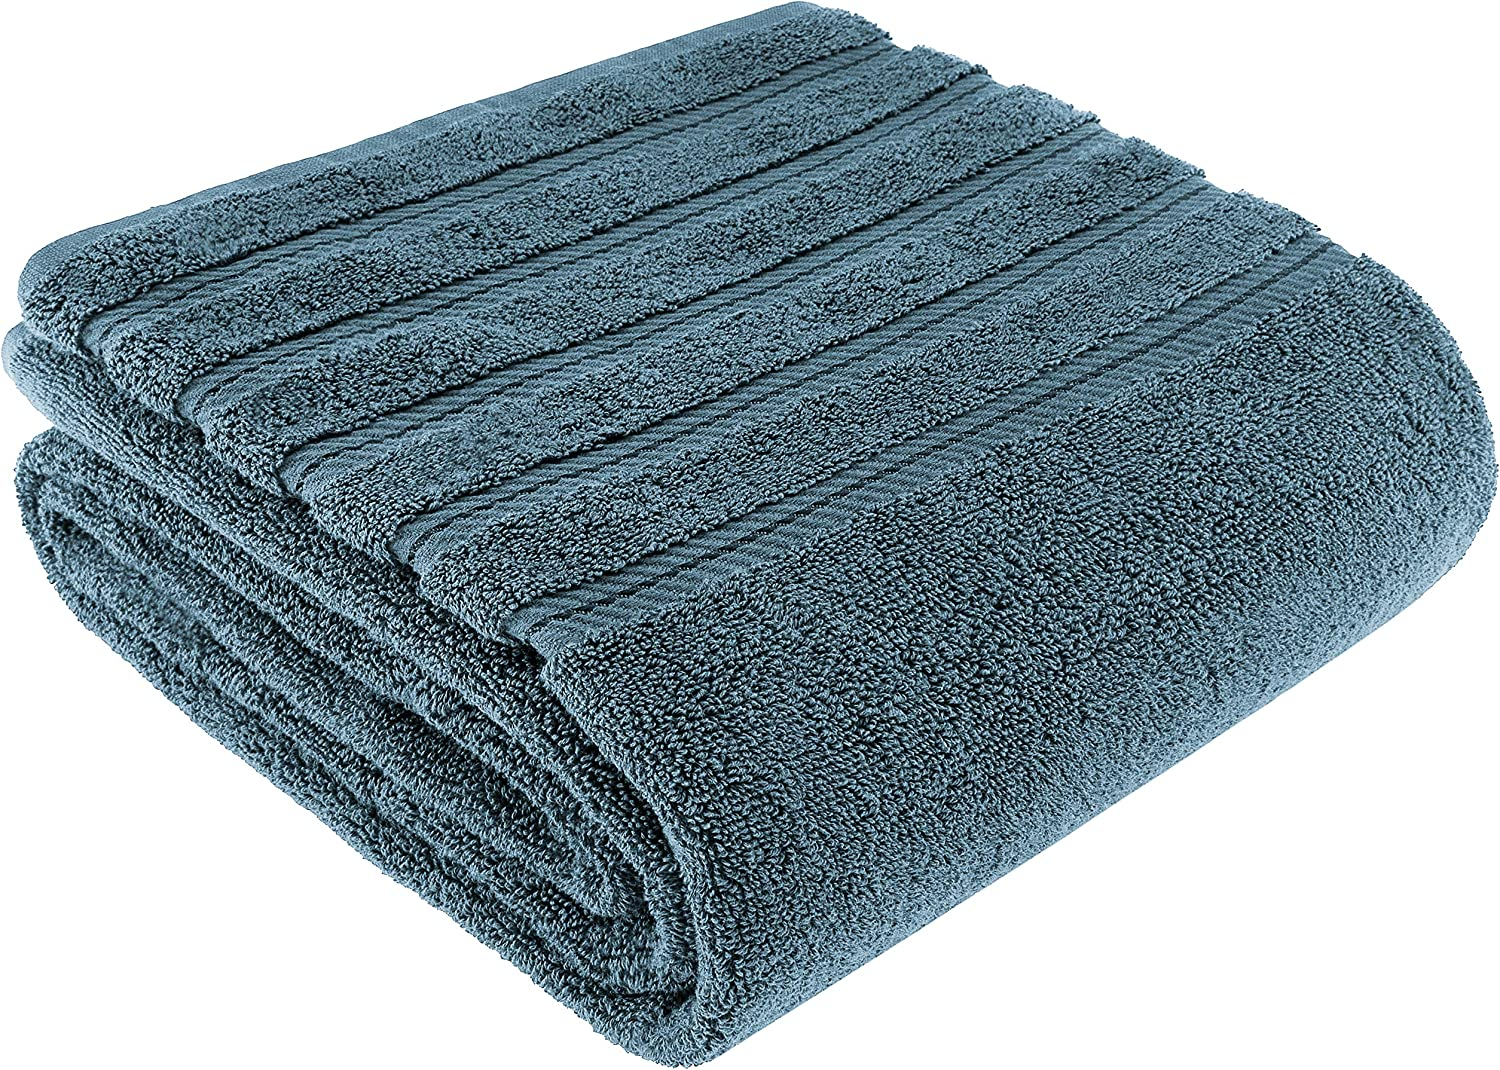 American Soft Linen Premium, Luxury Hotel & Spa Quality, 35x70 Extra Large Jumbo Size Bath Towel, Bath Sheet Cotton for Maximum Softness and Absorbency, [Worth $34.95] Colonial Blue